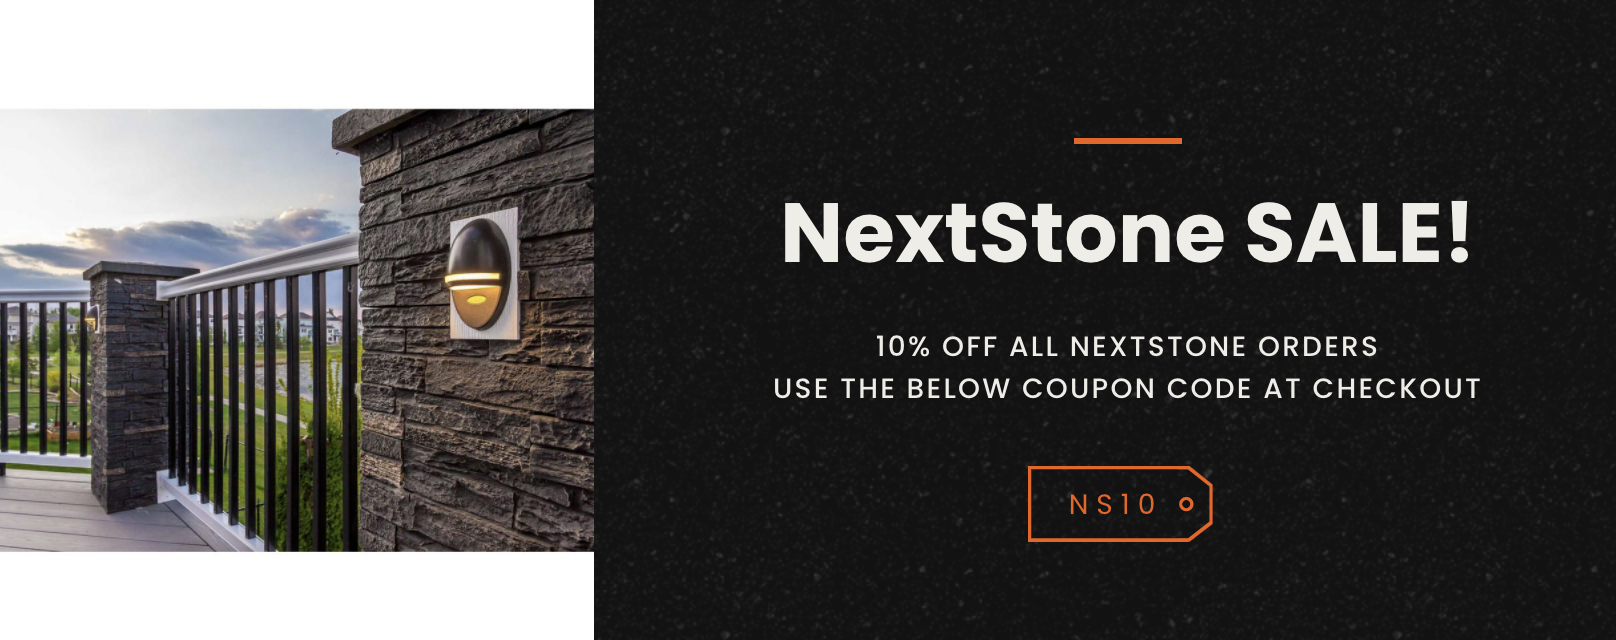 NextStone Sale Extended to 5/10/21